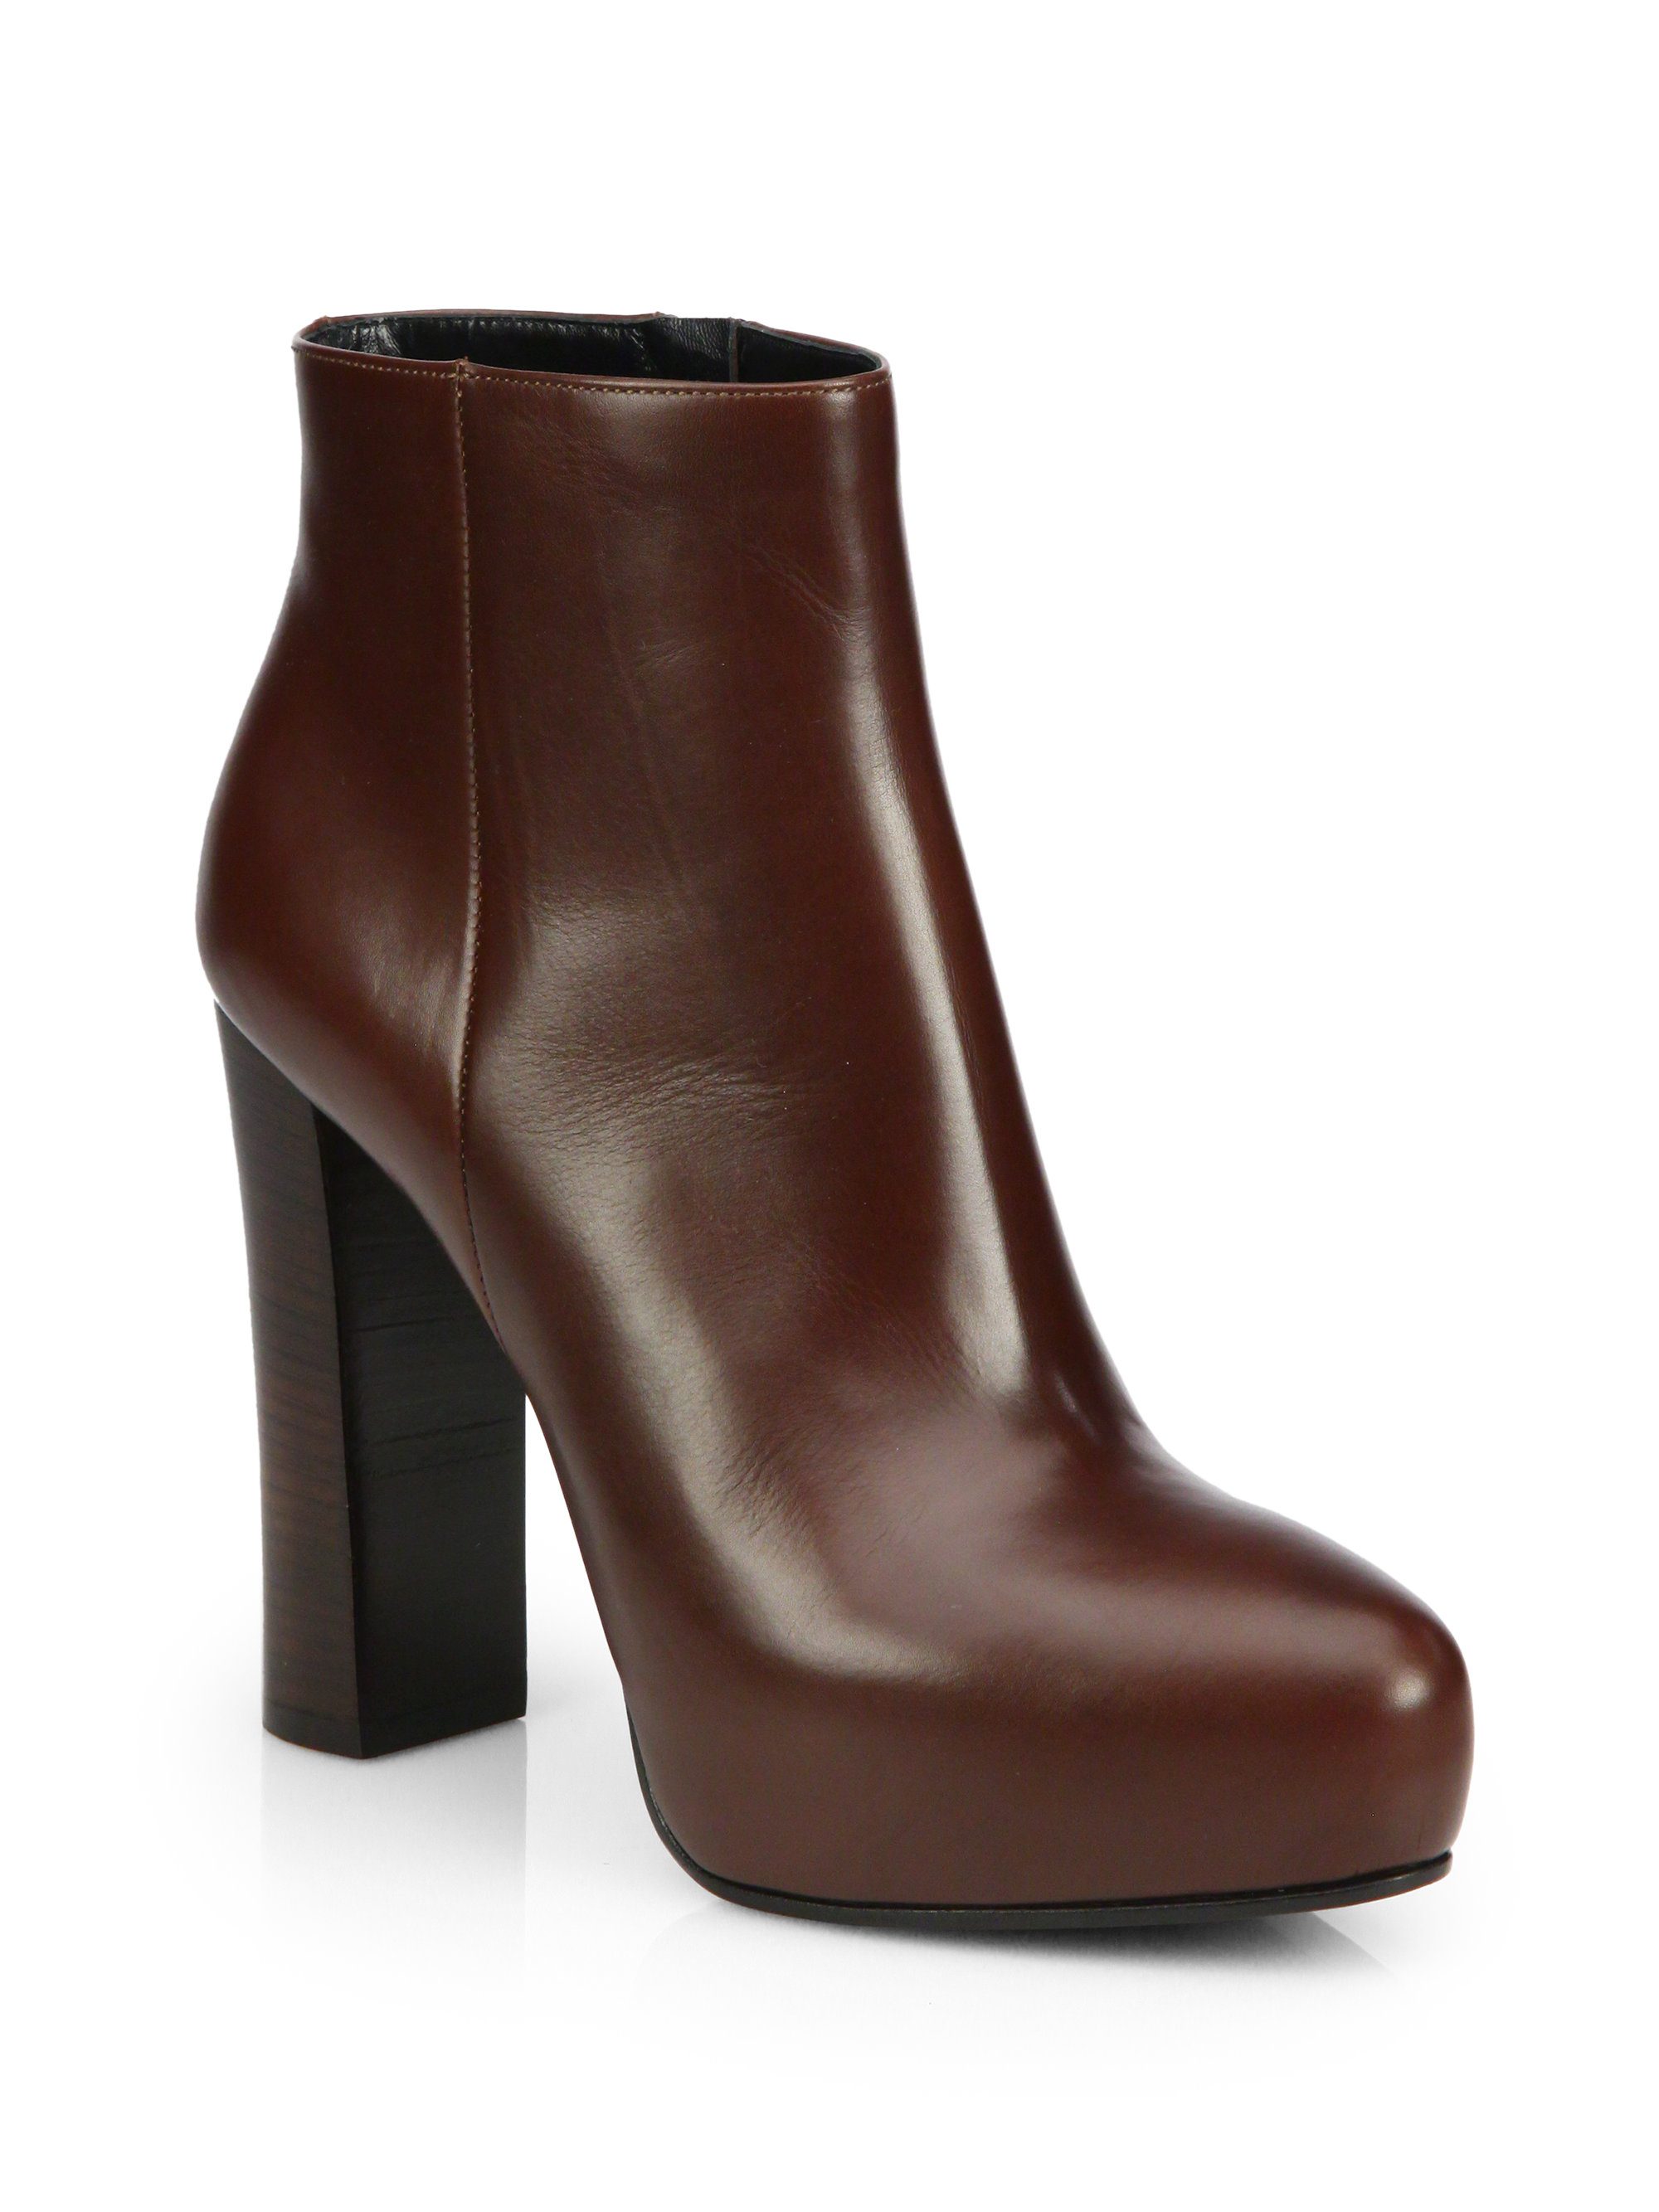 brown ankle boots gallery uexcndh